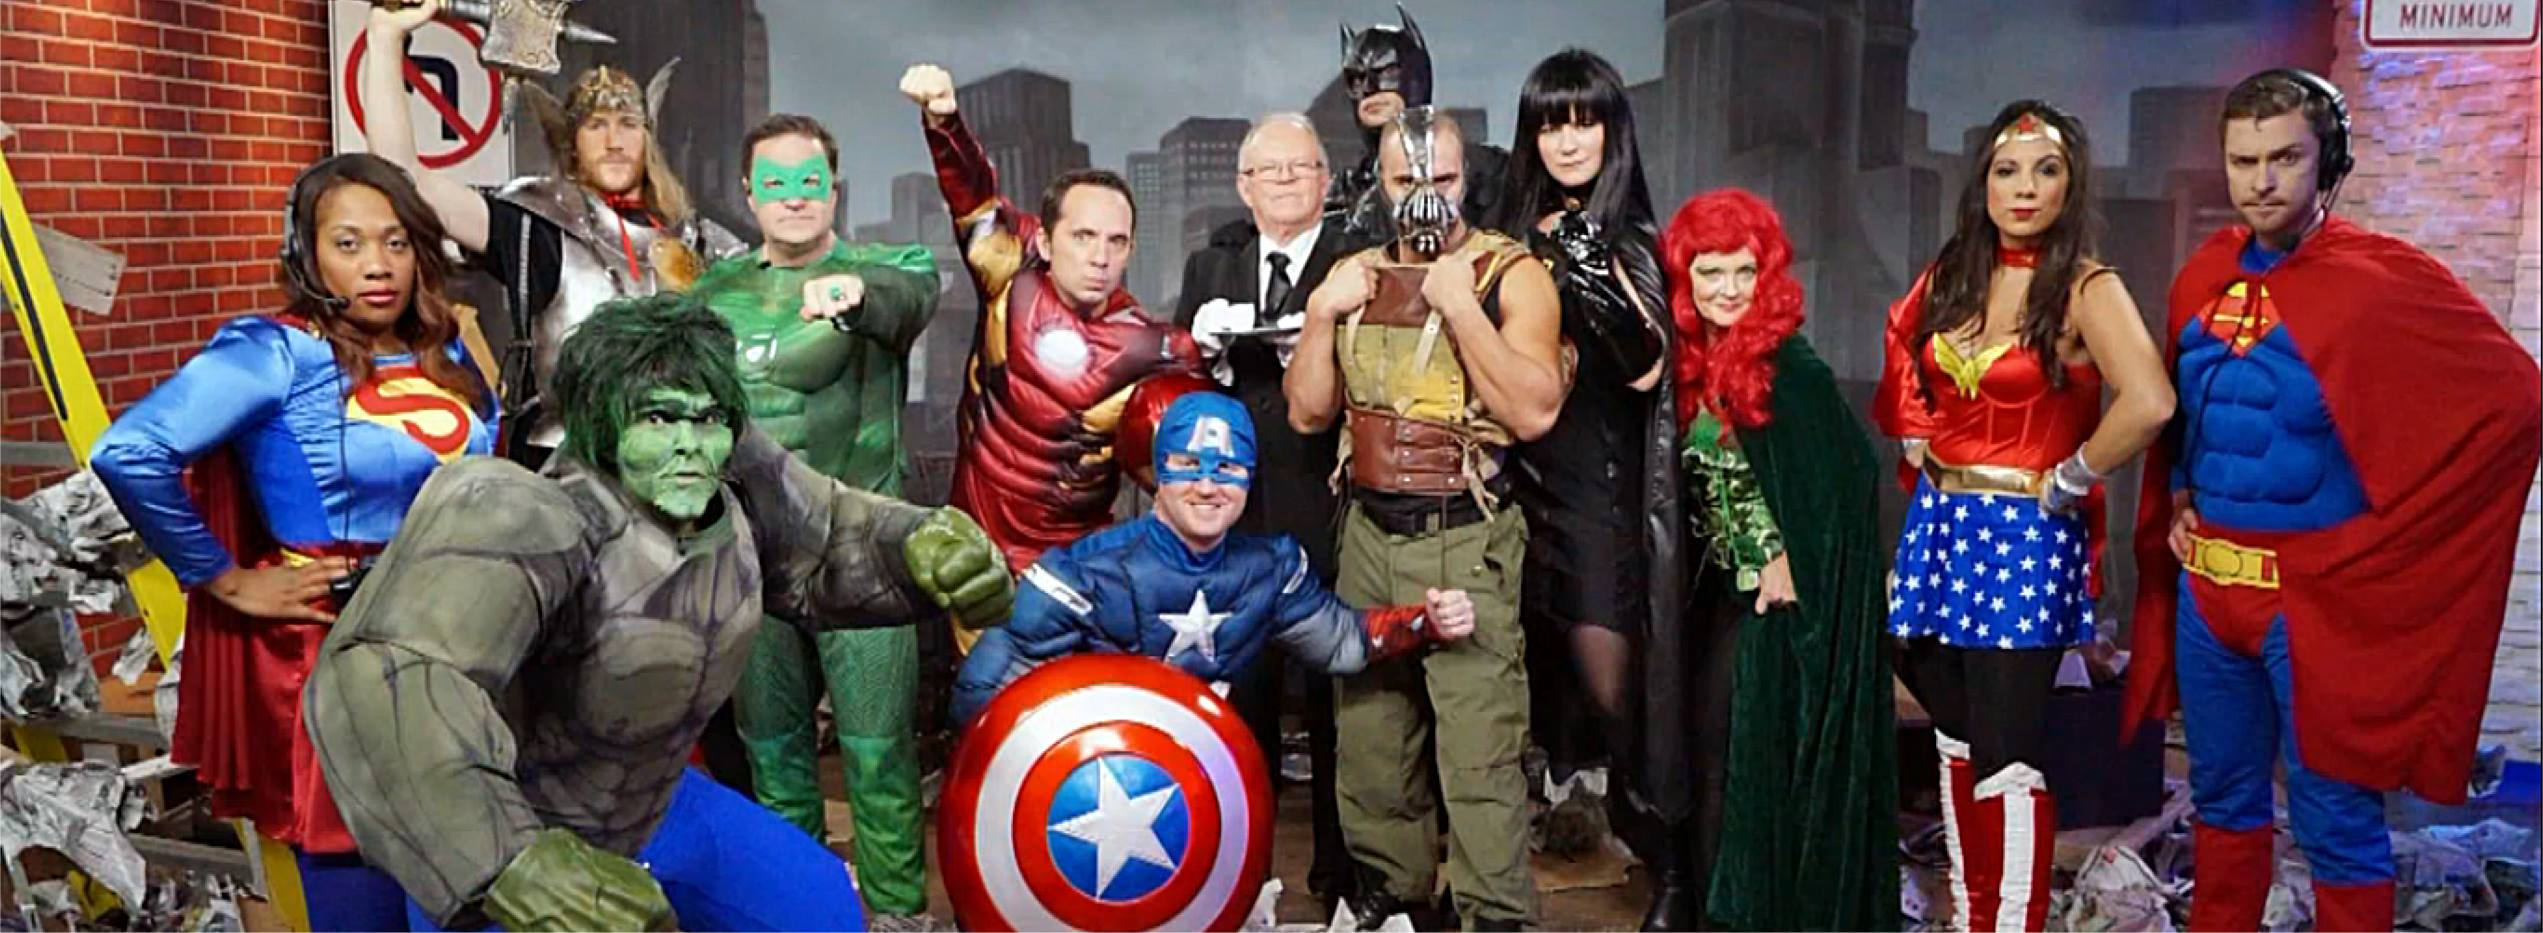 Theatrix is having a massive costume sale